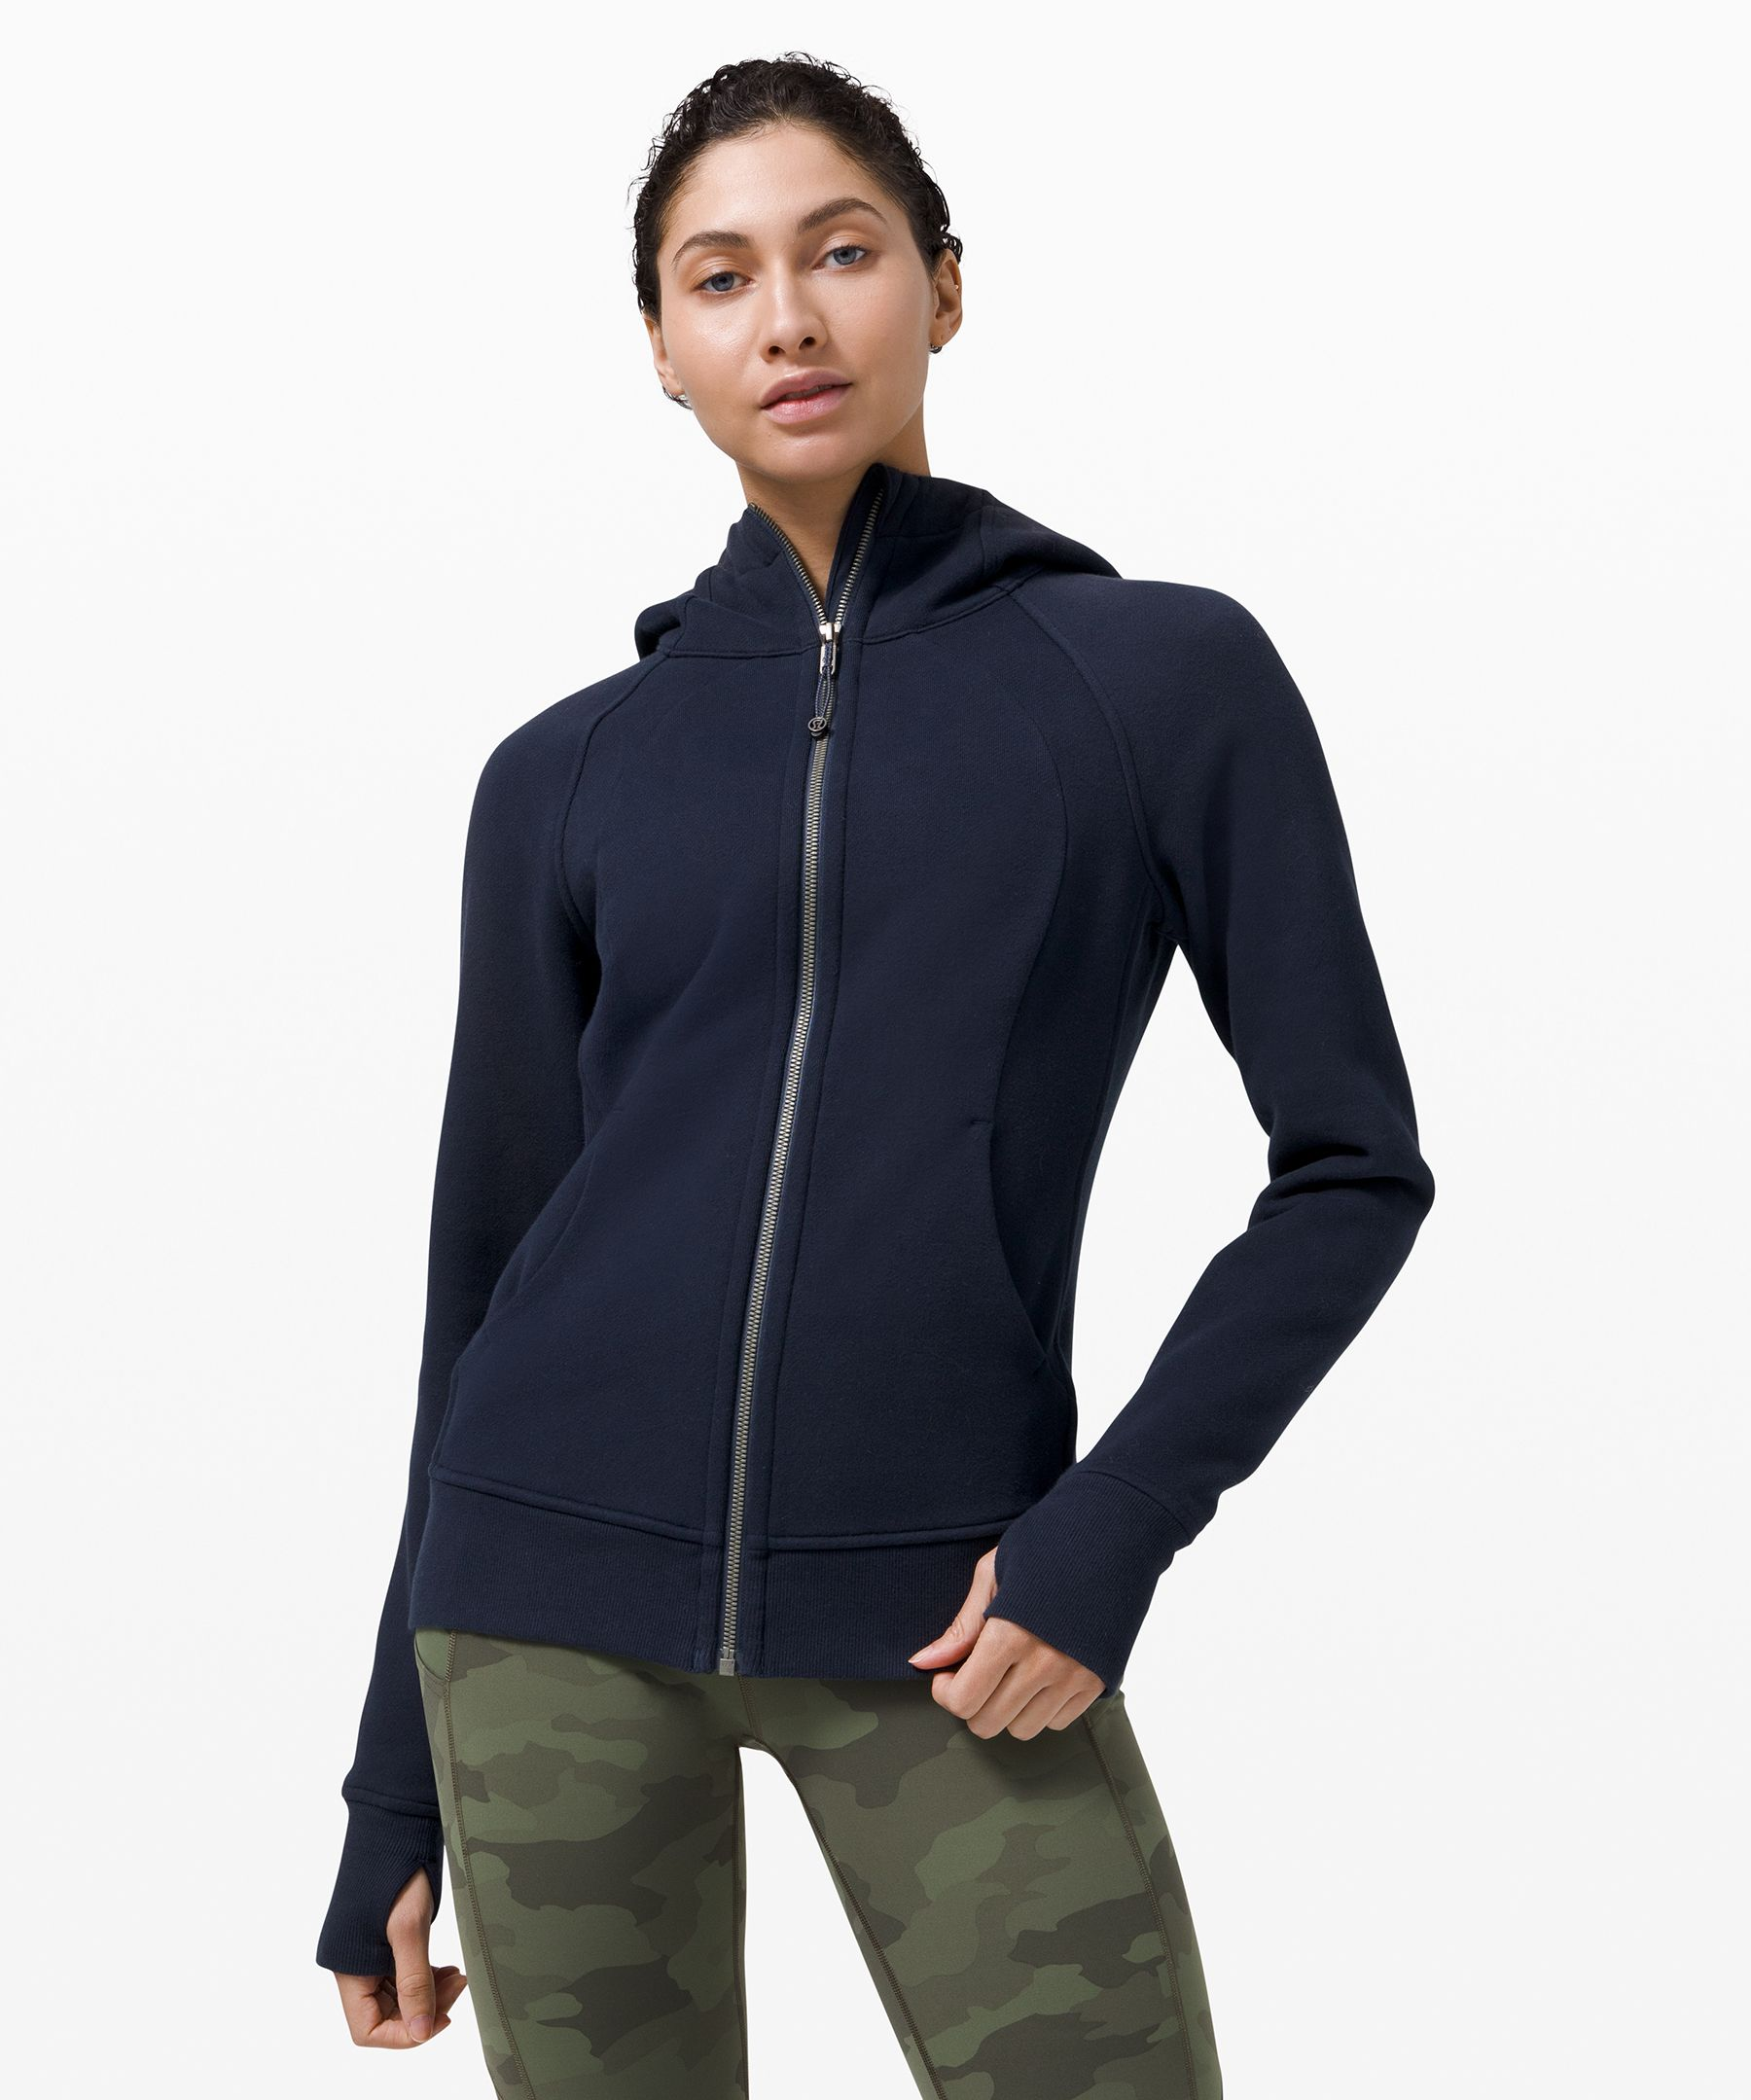 Breathable, warm, and cozy, our signature hoodie is the perfect pre- and post-workout layer.